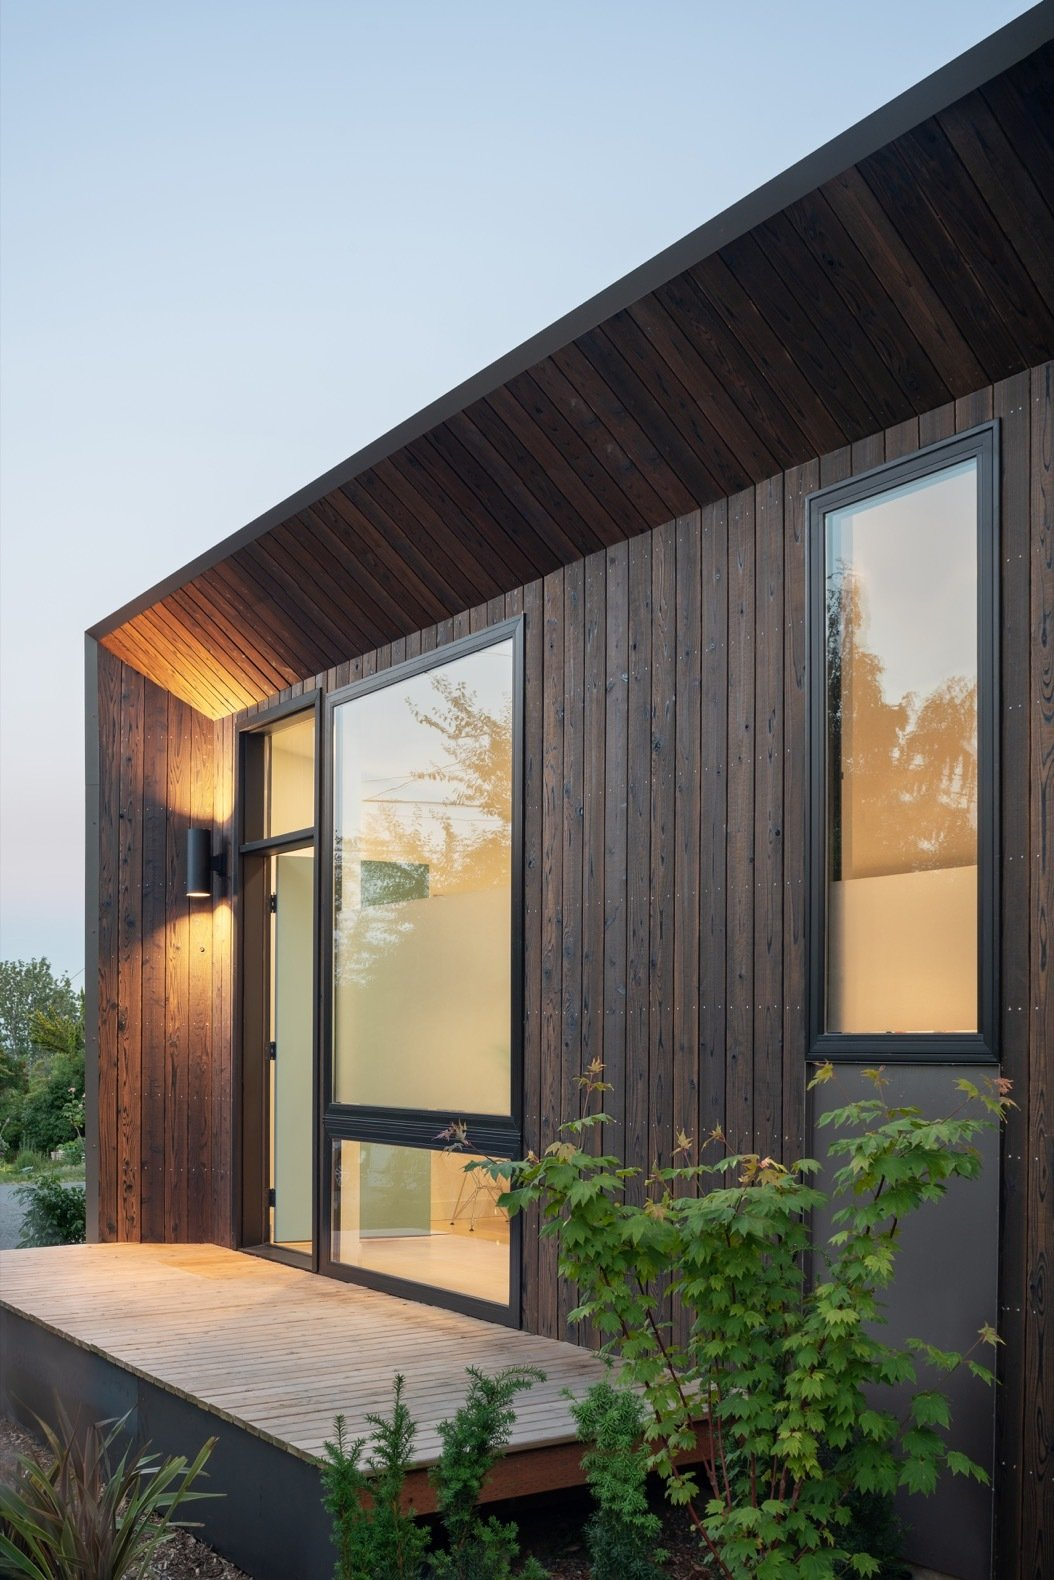 Solar Studio prefab Anderson100 Fibrex Windows